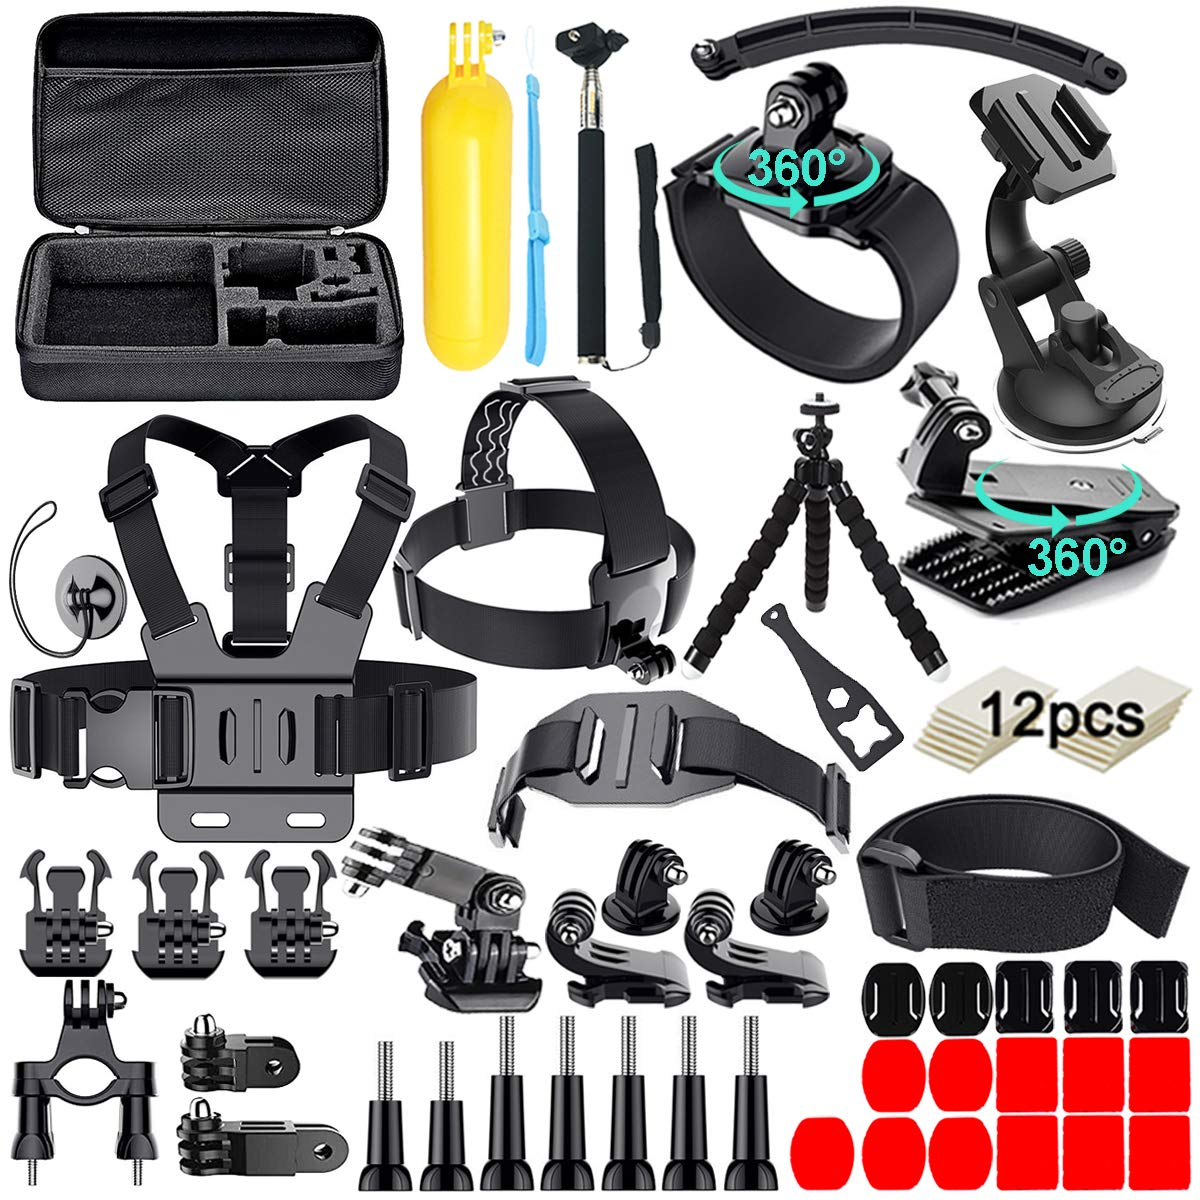 61 in 1 Action Camera Accessories Kit for GoPro Hero7 6 5 4 3 Hero Session 5 Black SJ4000 5000 6000 Xiaomi Yi AKASO Campark Action Camera by Appolab